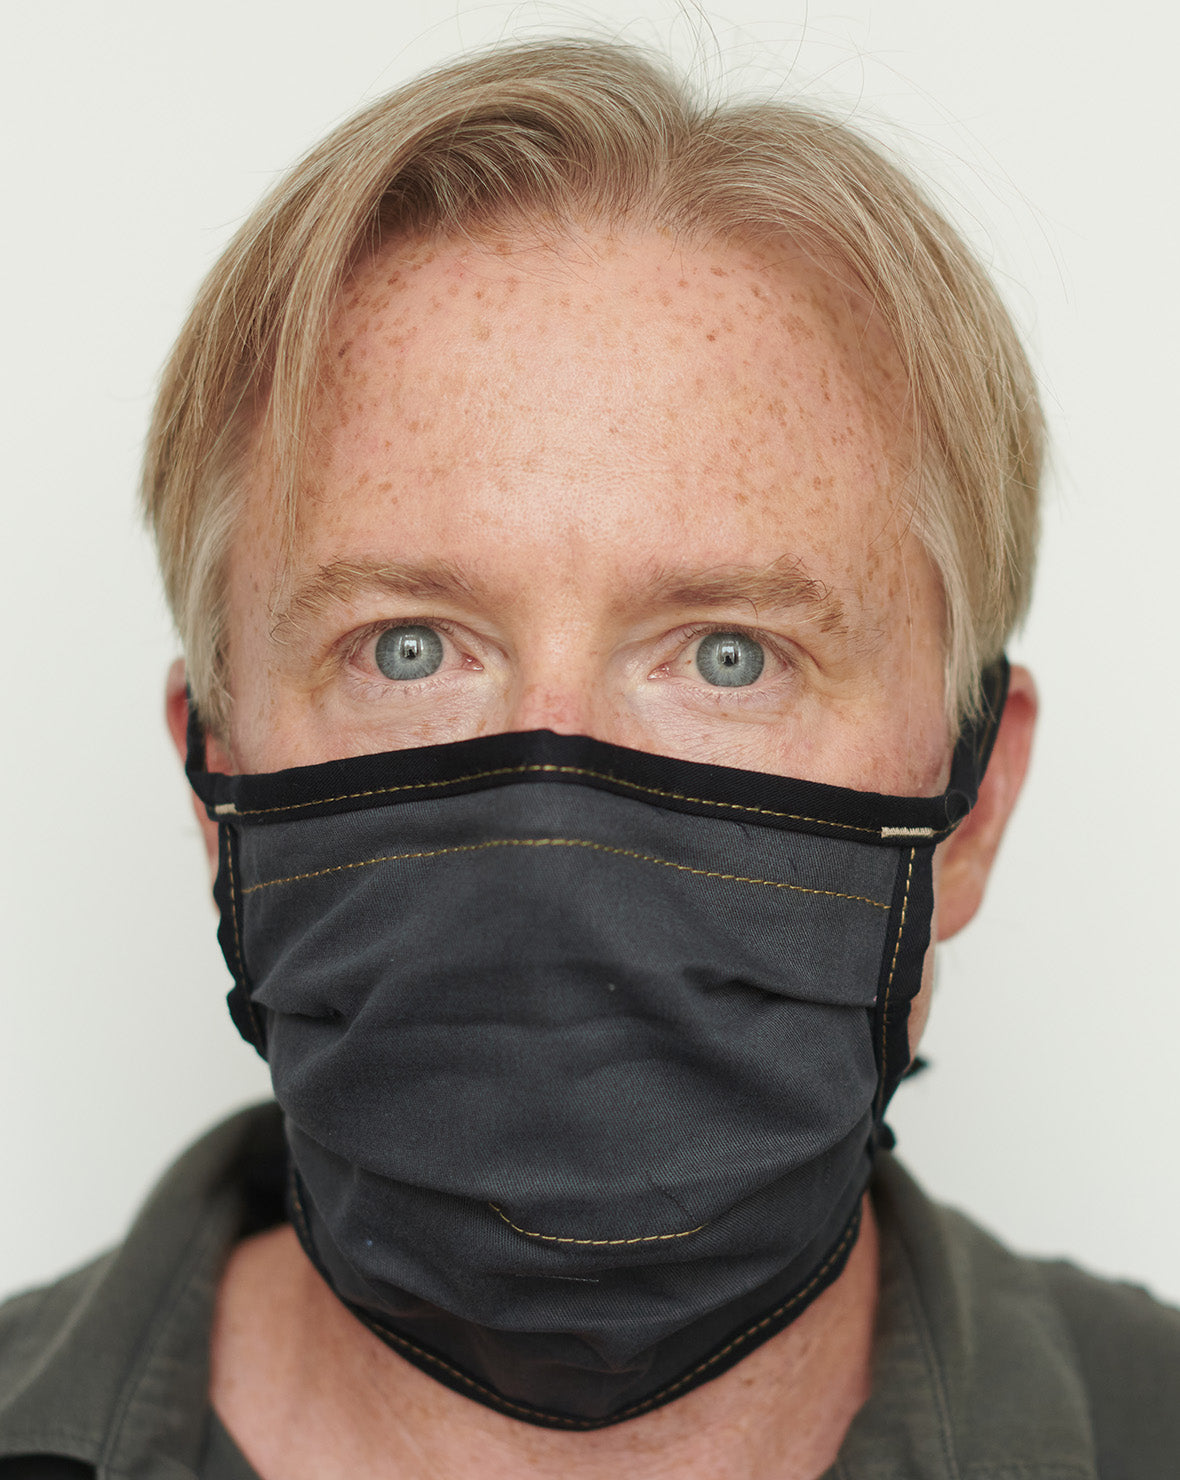 Jeremy wearing a slate / navy mask